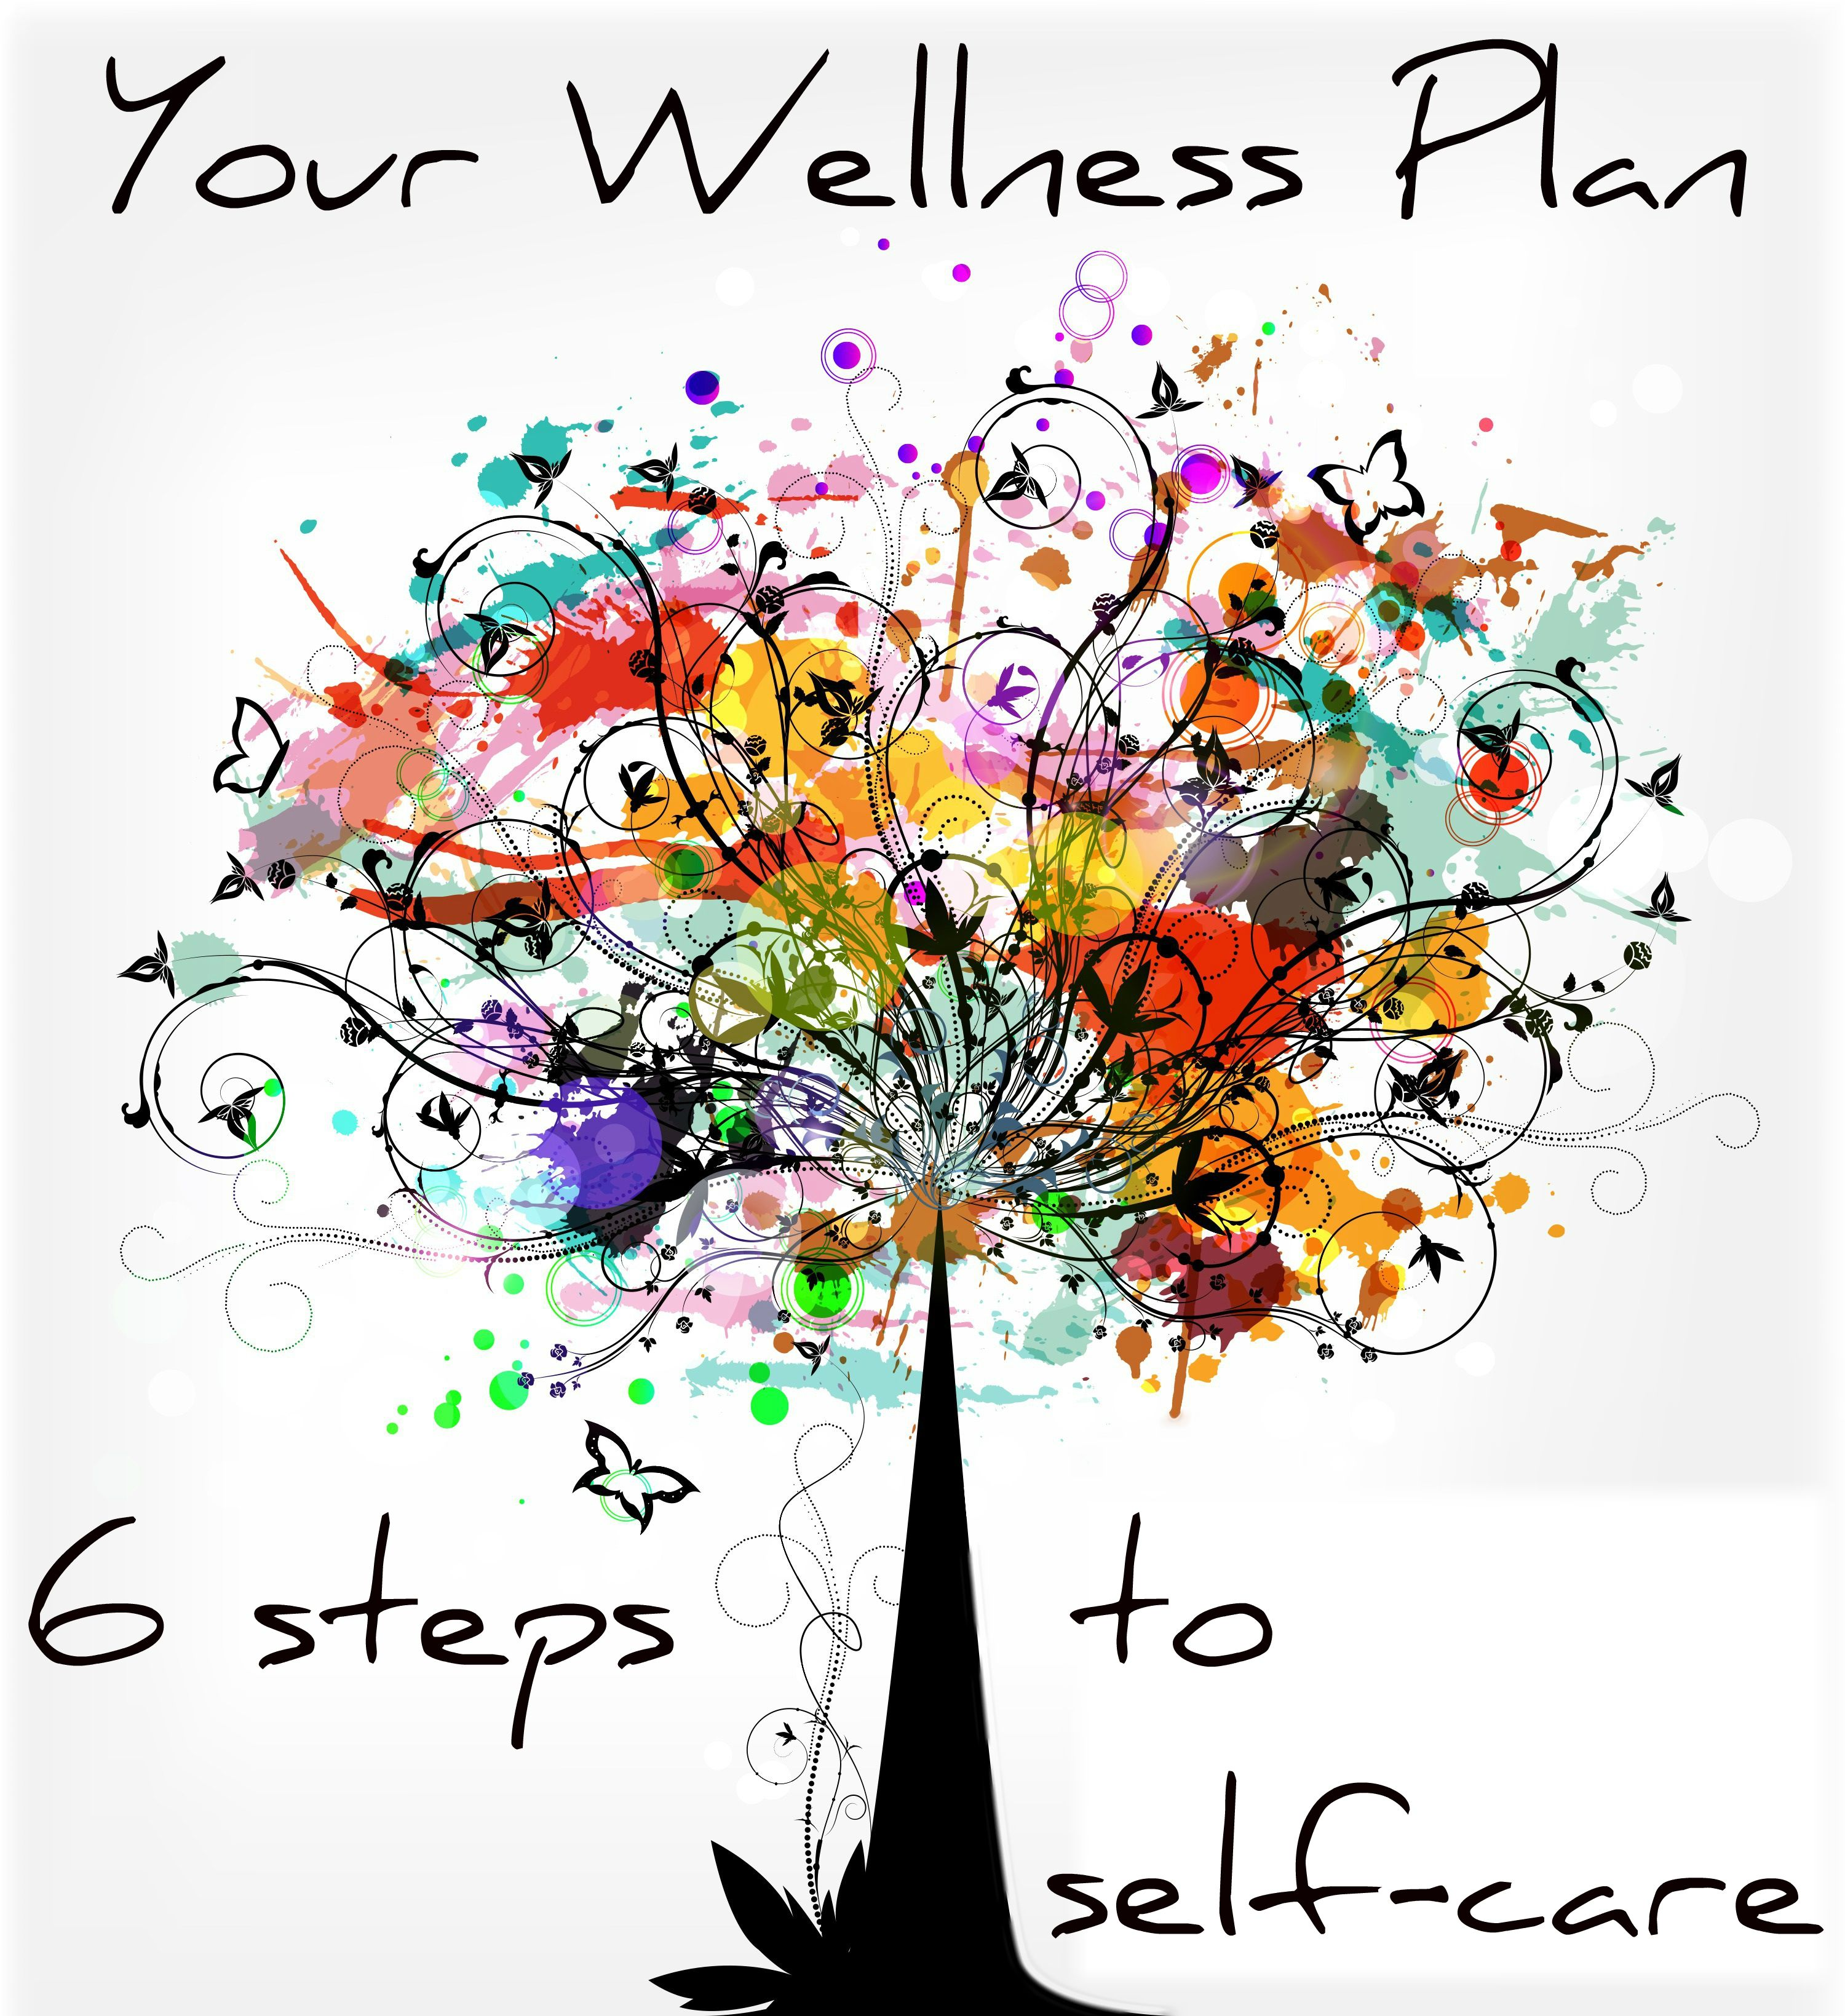 Wellness Recovery Action Plan Worksheet Sharebrowse – Action Plan Work Sheet